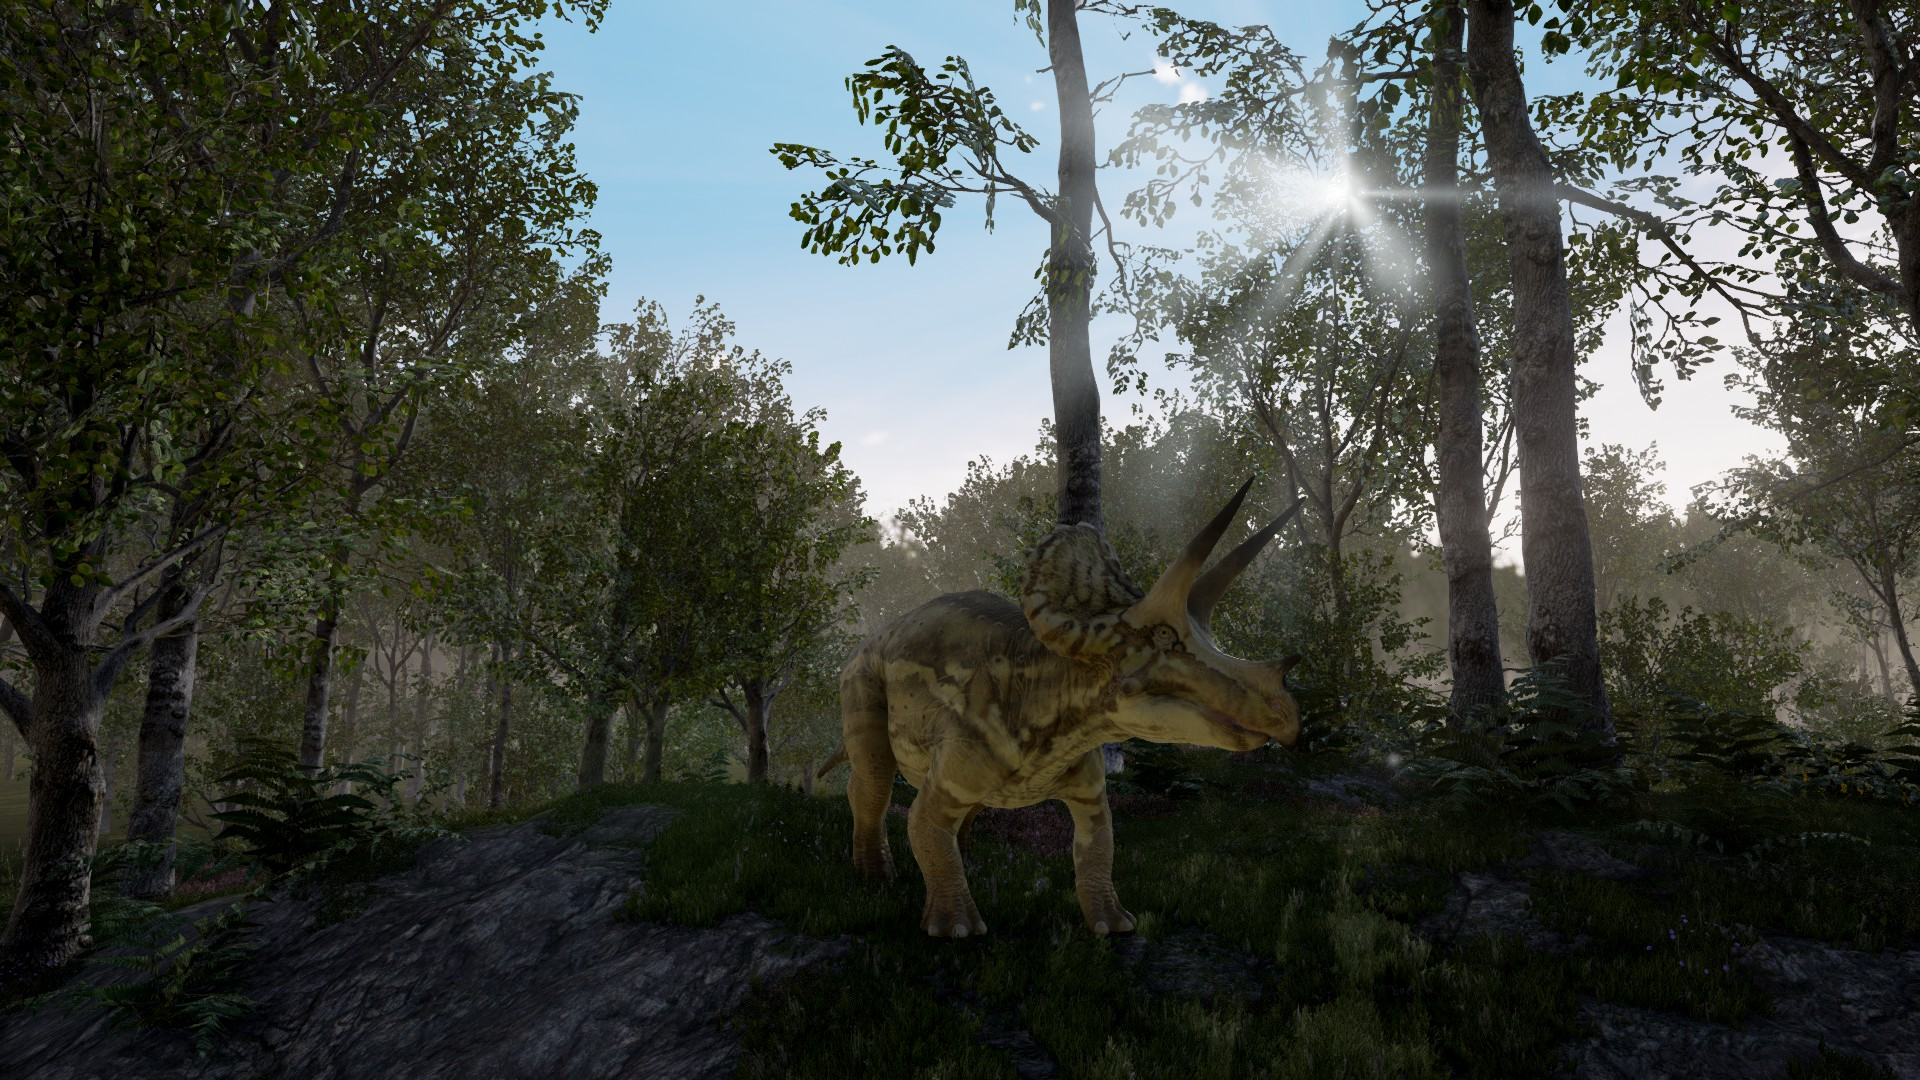 Indie Wallpaper Hd New Dinosaurs And More Feature The Isle Indie Db